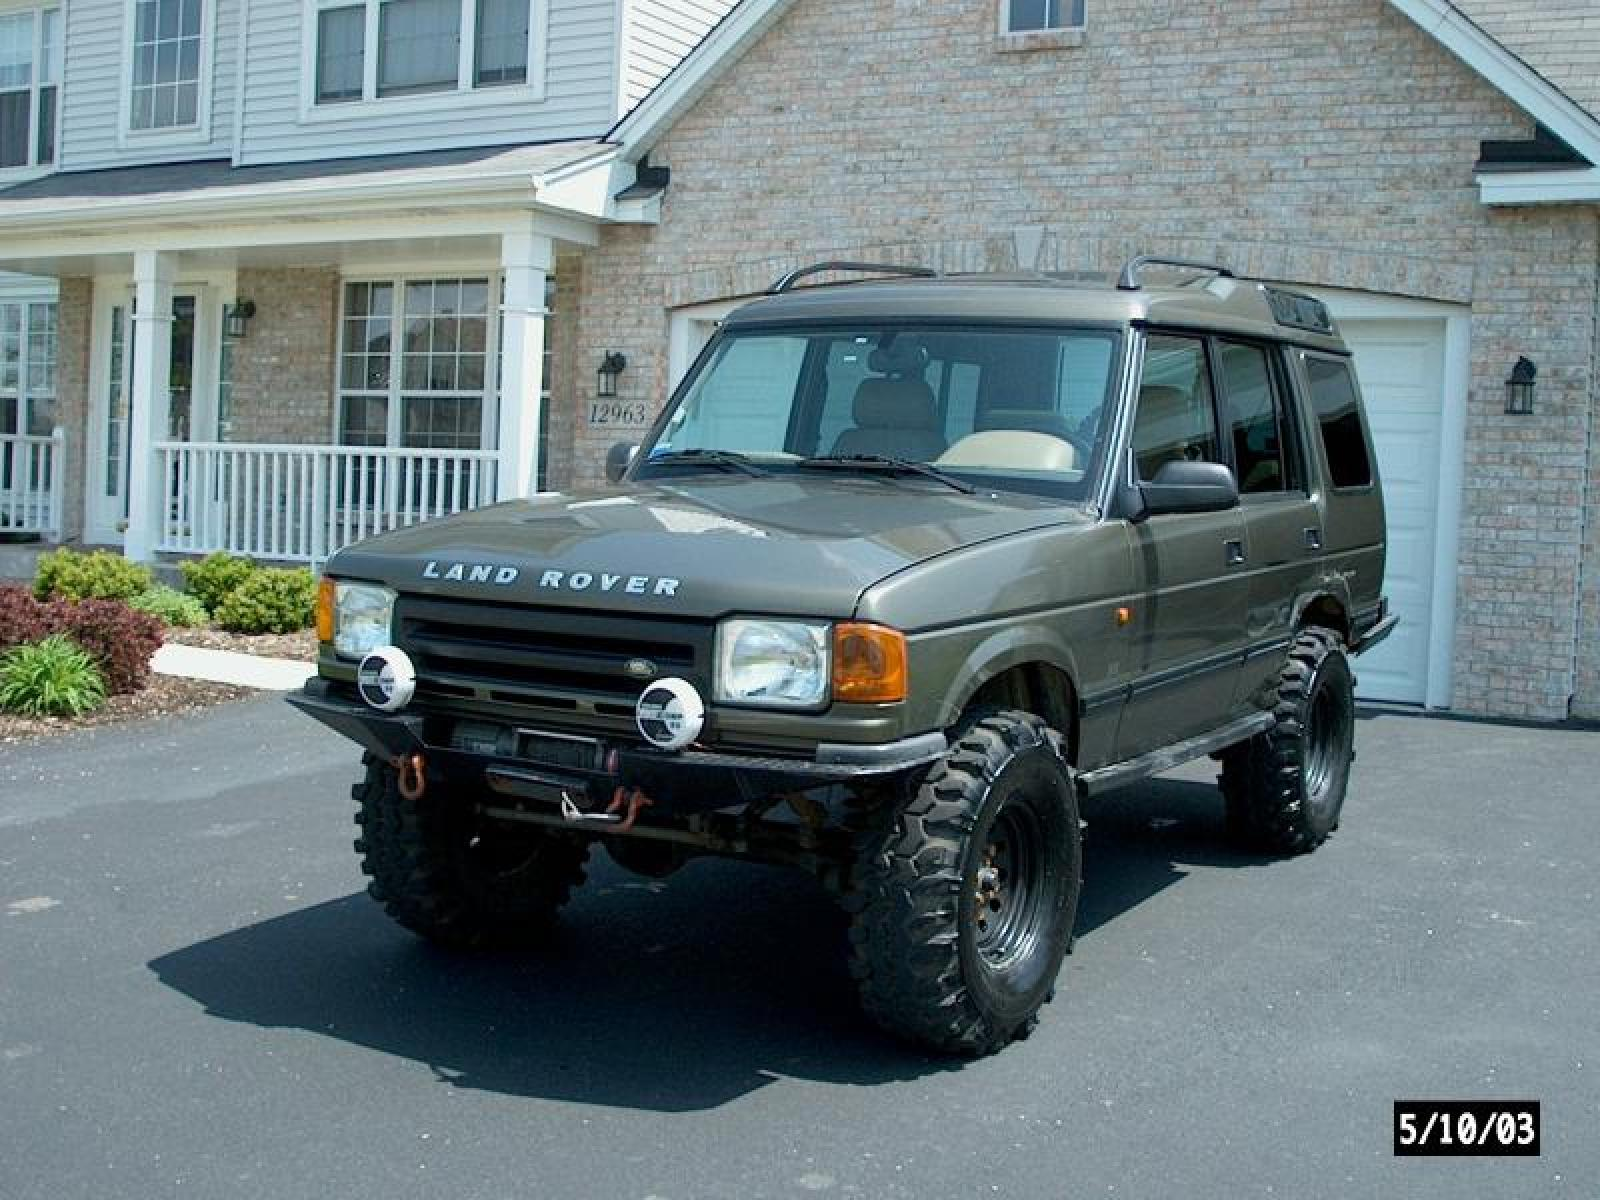 1997 Land Rover Discovery Information and photos ZombieDrive